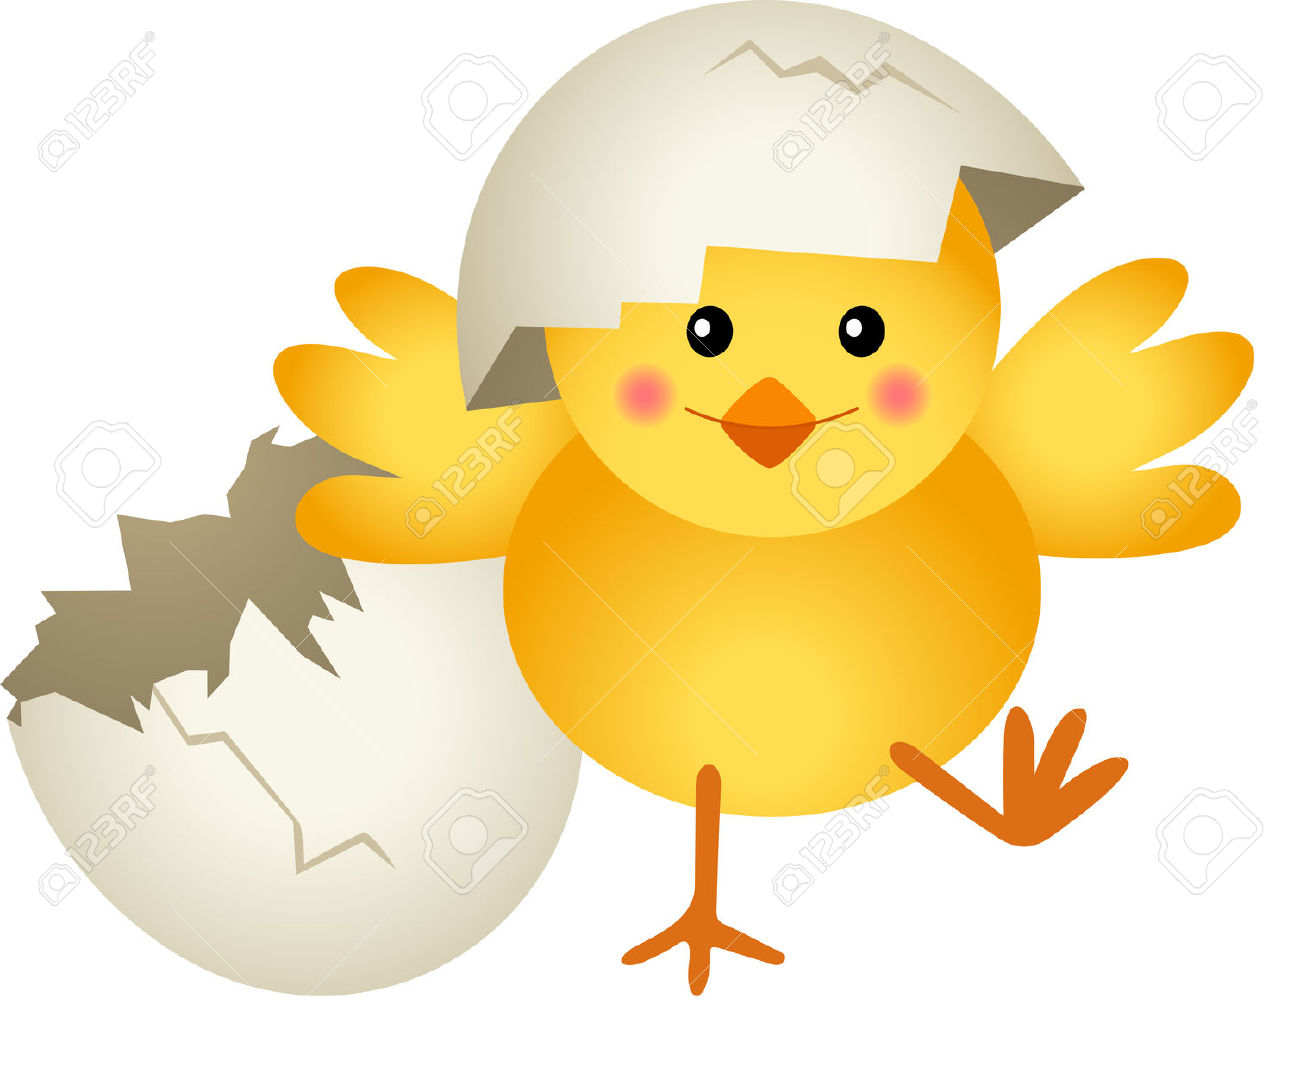 Chicken Leaving Cracked Egg Funny Clipart Image.